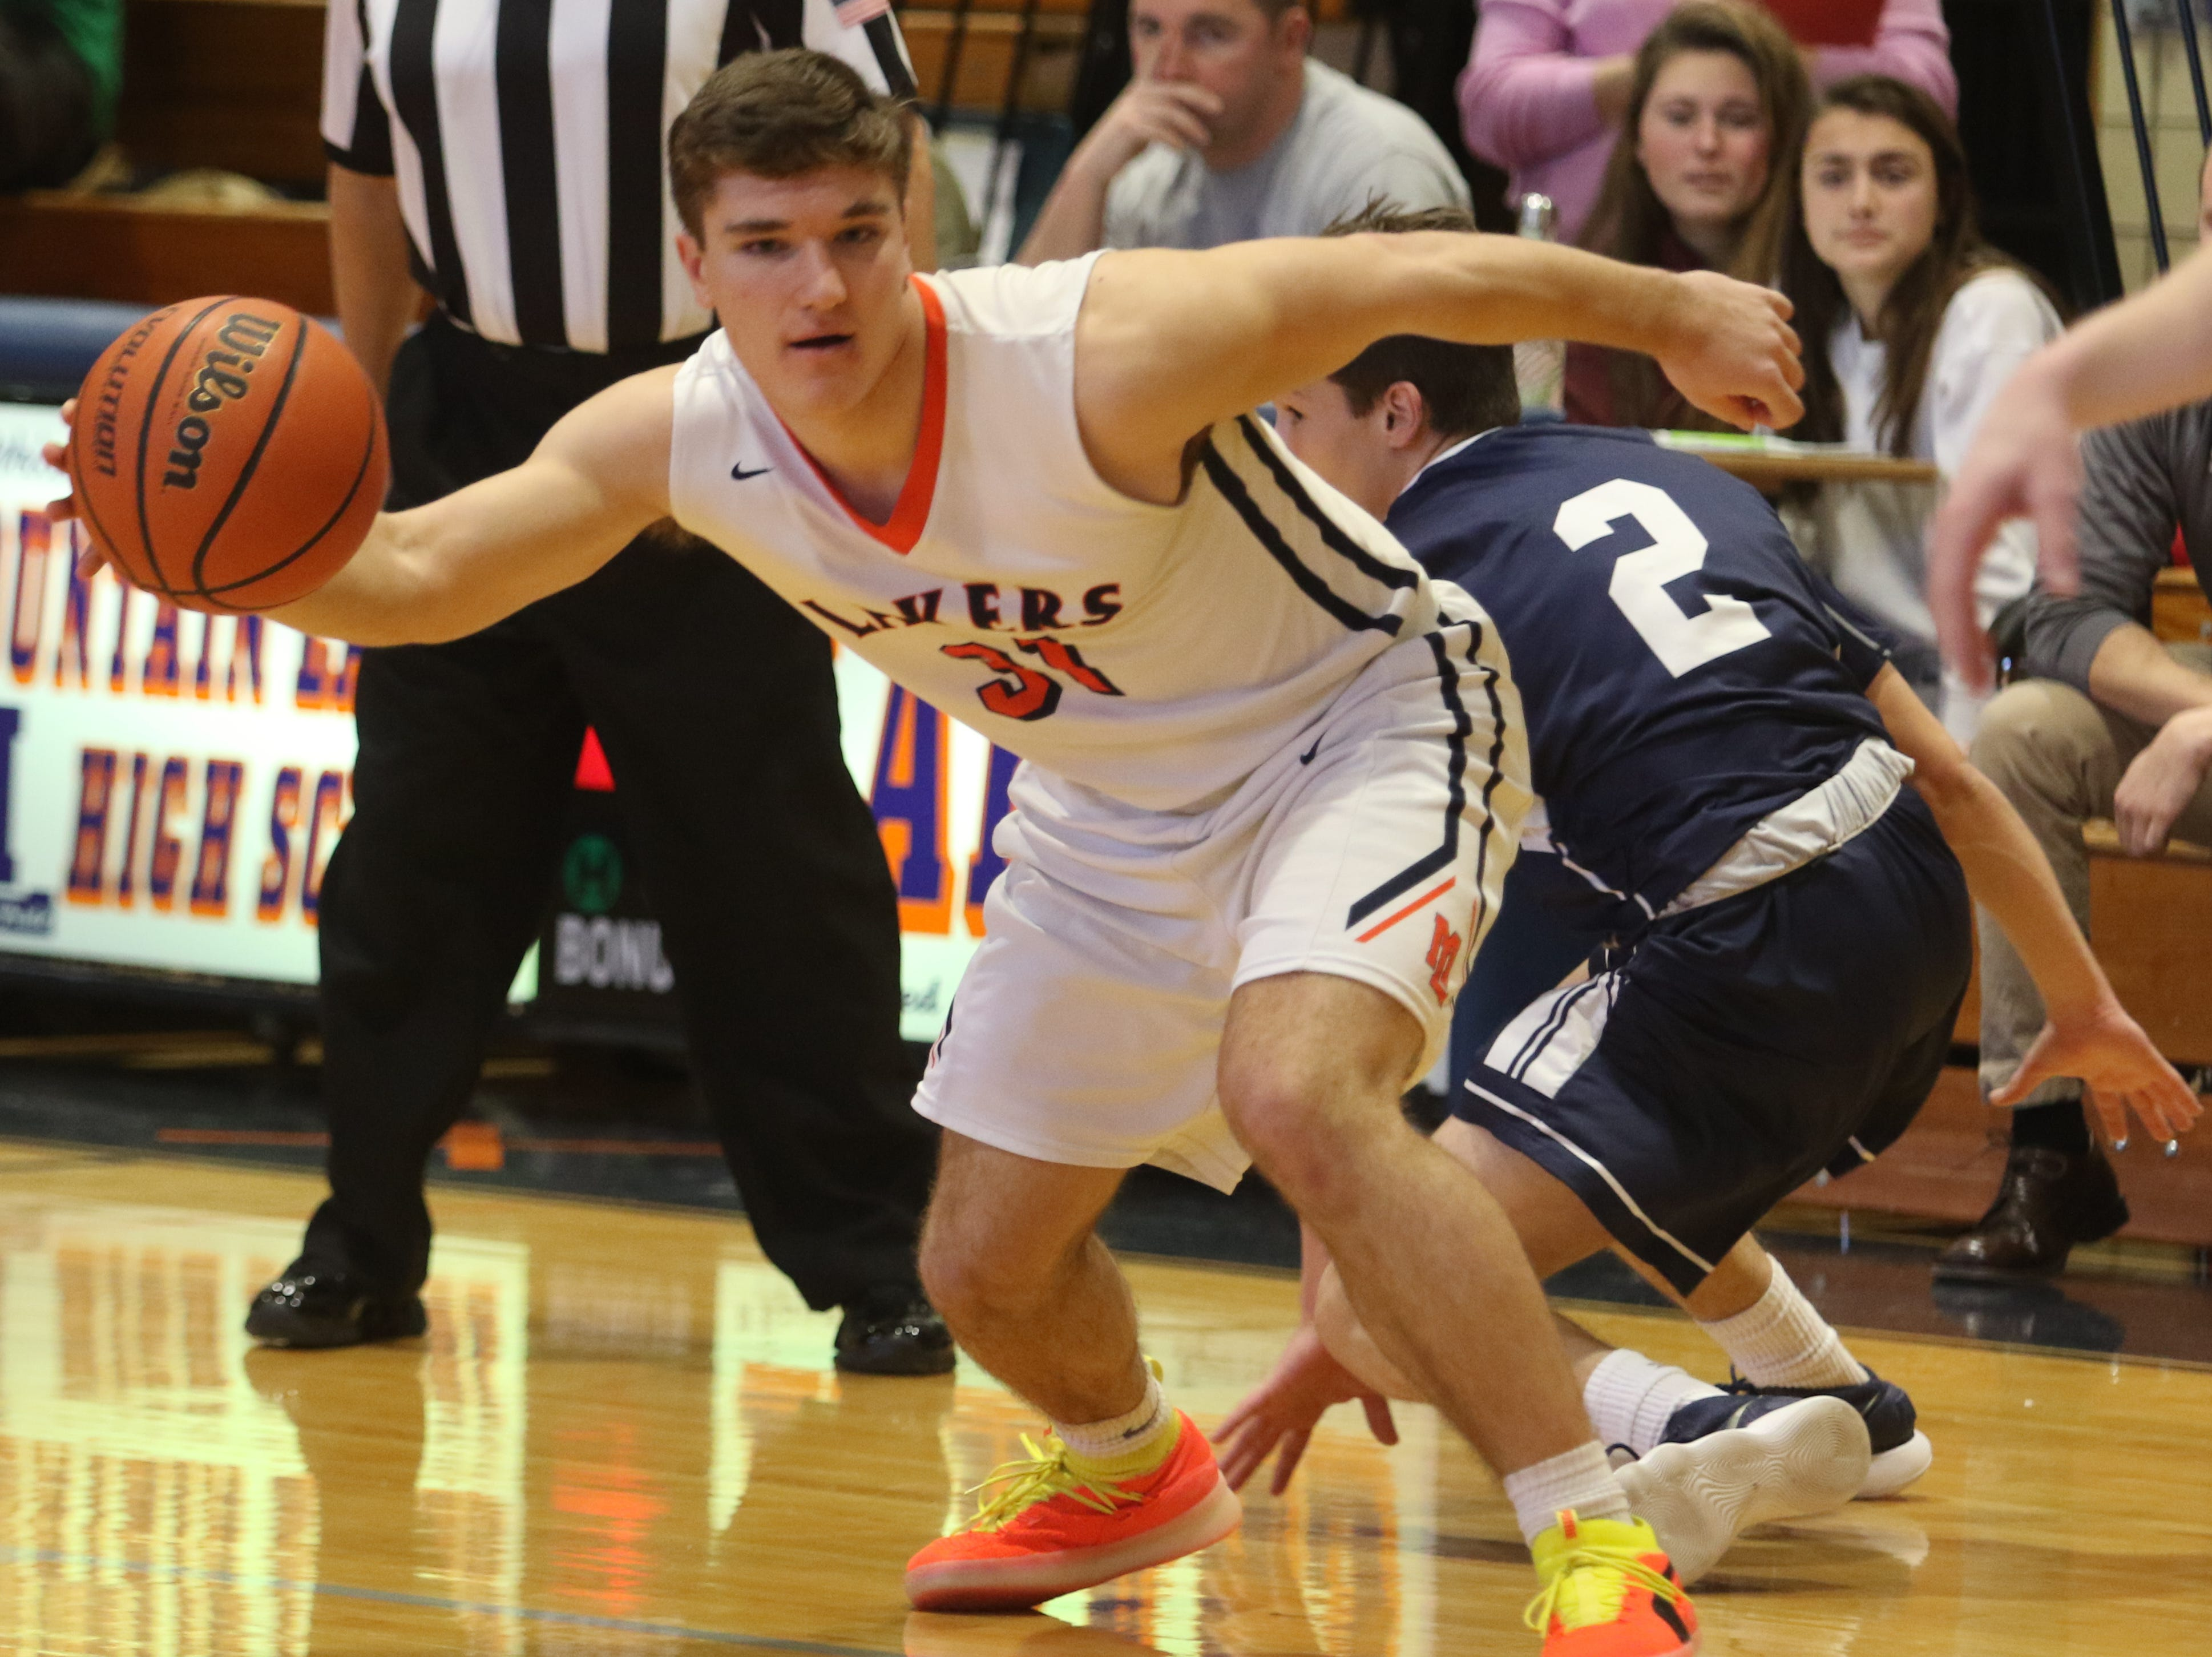 Jason Luzzi of Mountain Lakes dribbles the ball in the offensive zone in the first half.